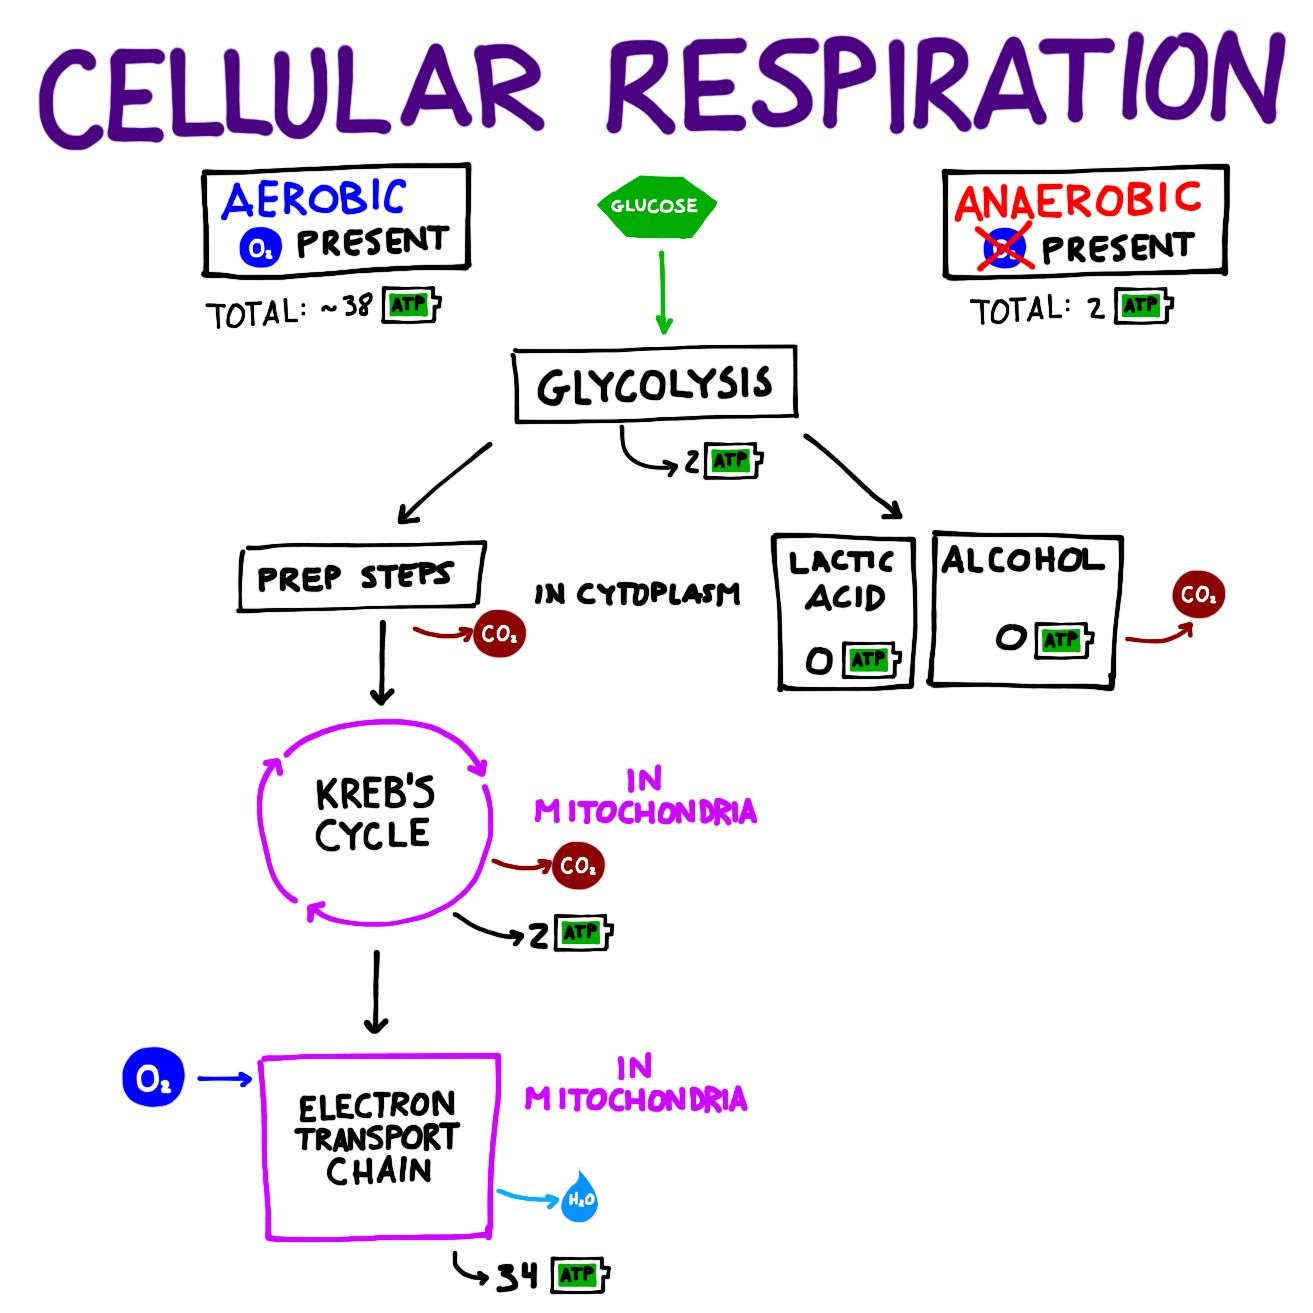 Overview Of The Major Steps Of Cellular Respiration